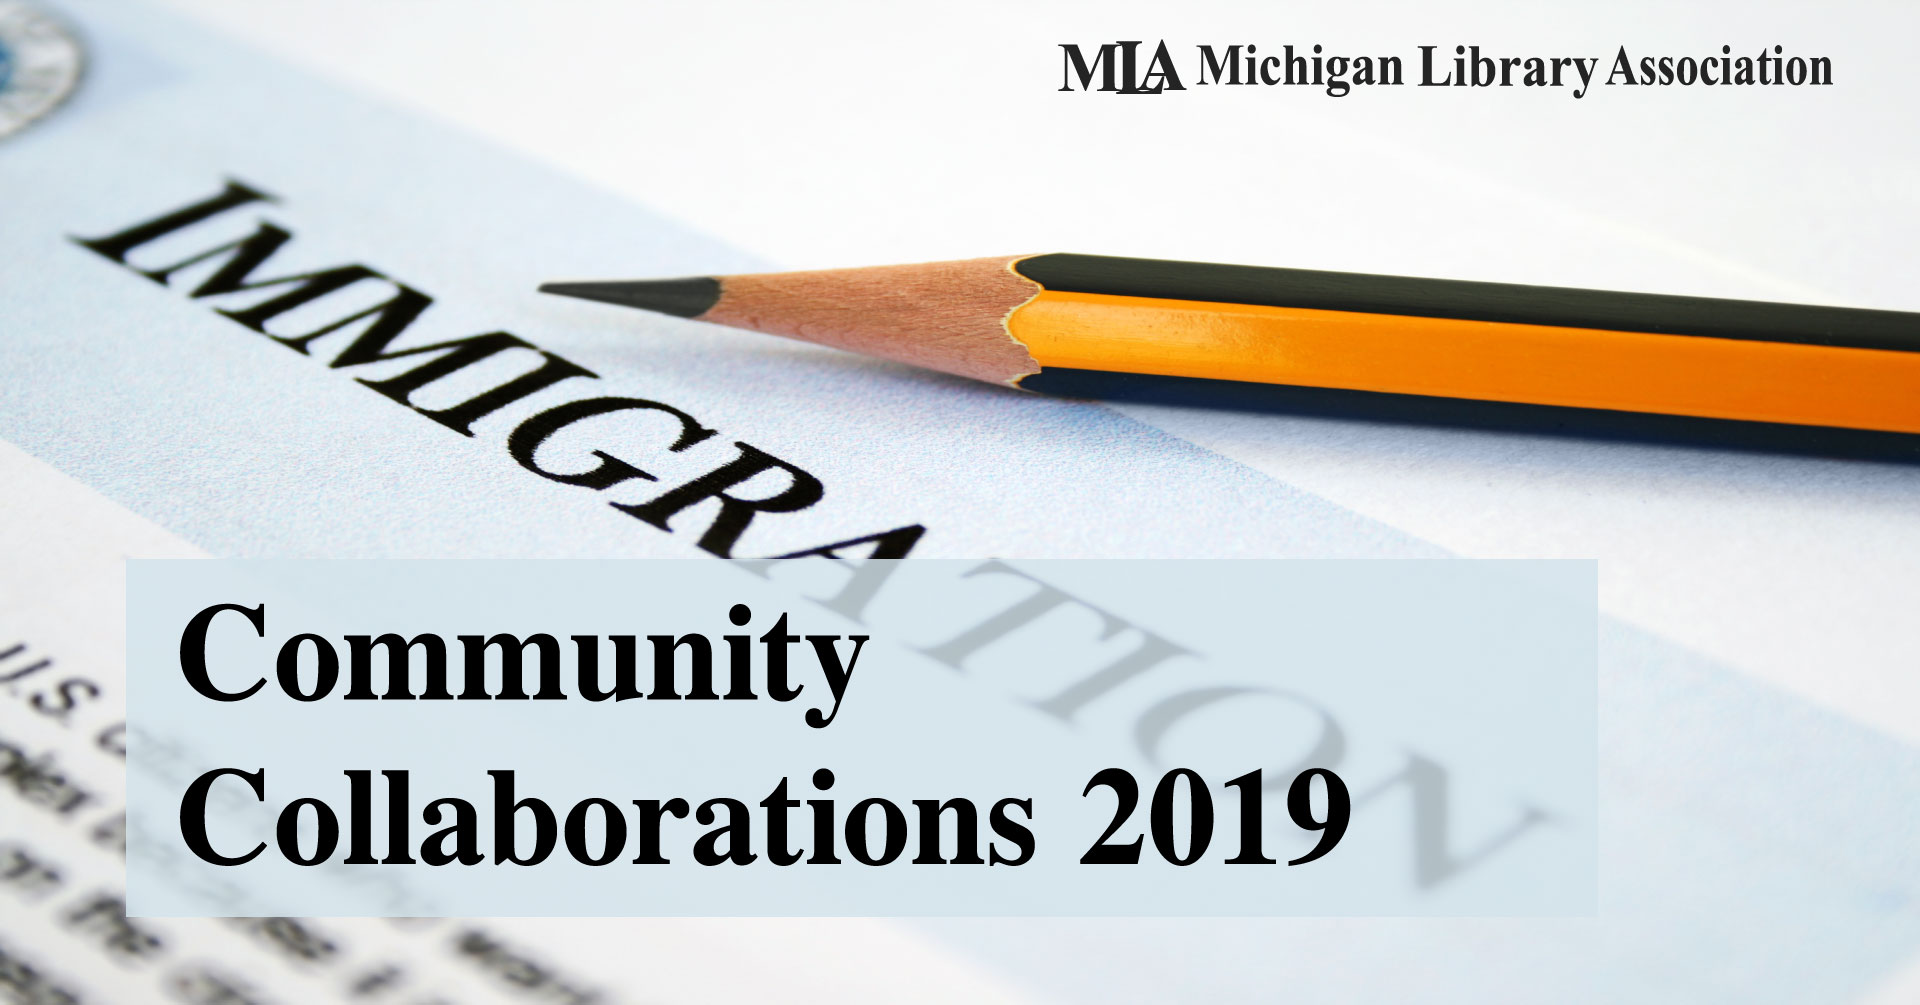 Community Collaborations 2019 Event image